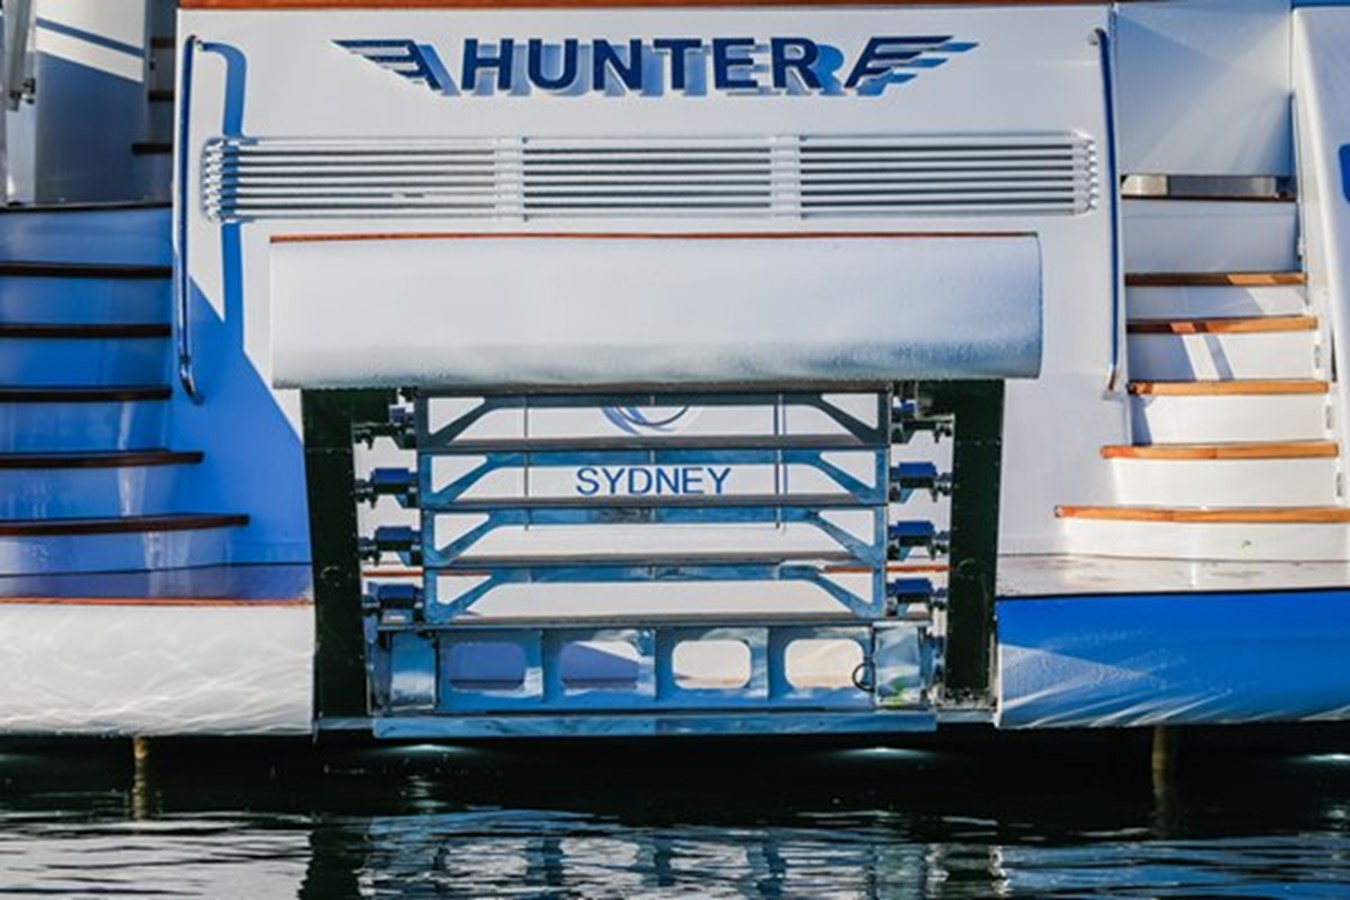 Hunter yacht for sale